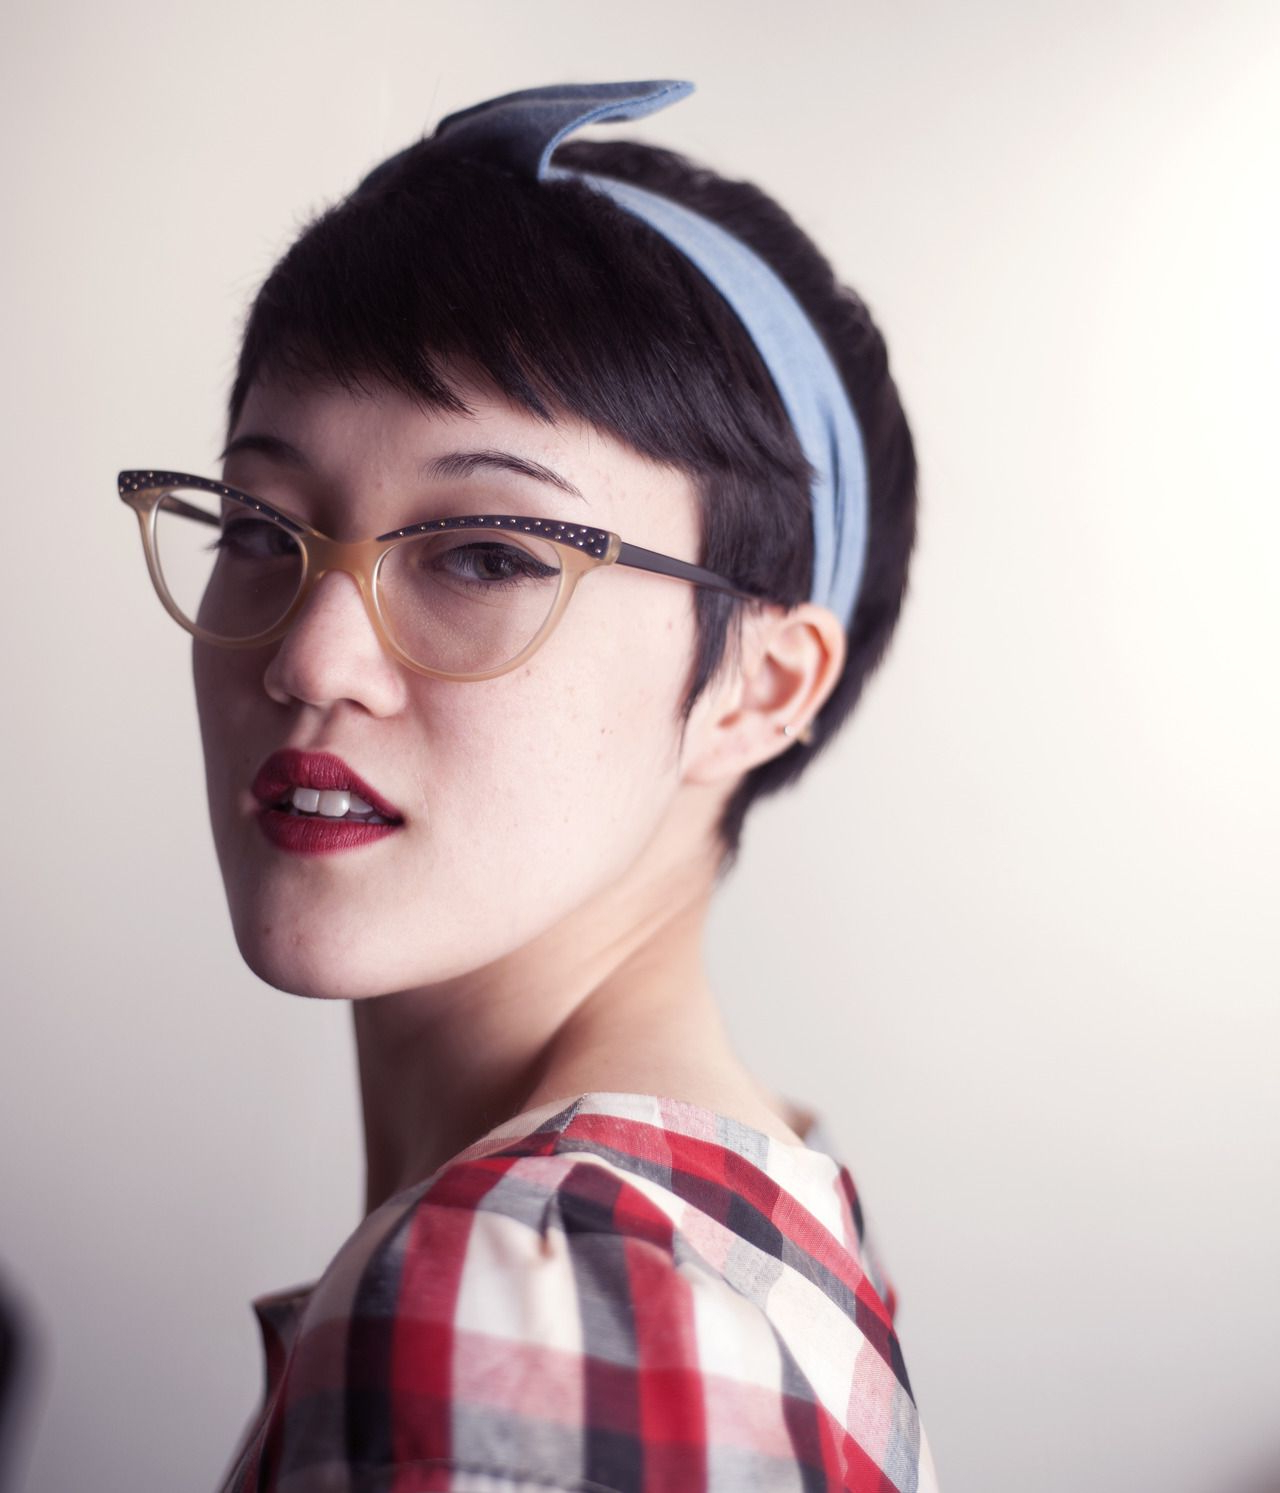 Girls With Short Hair Rock Vintage Glasses (View 8 of 25)